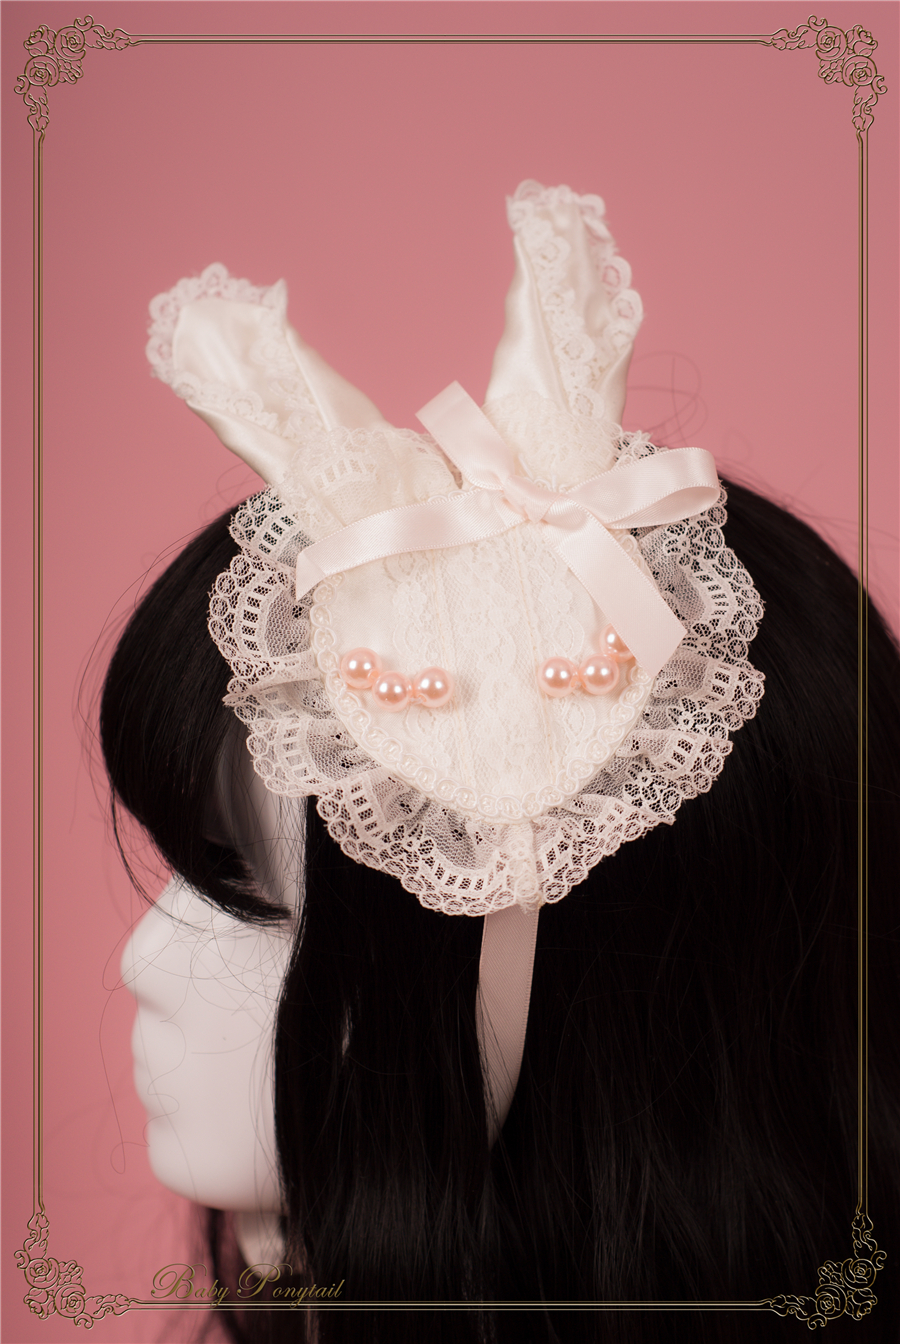 BabyPonytail_Stock Photo_My Favorite Companion_Bunny Head Dress_4.jpg